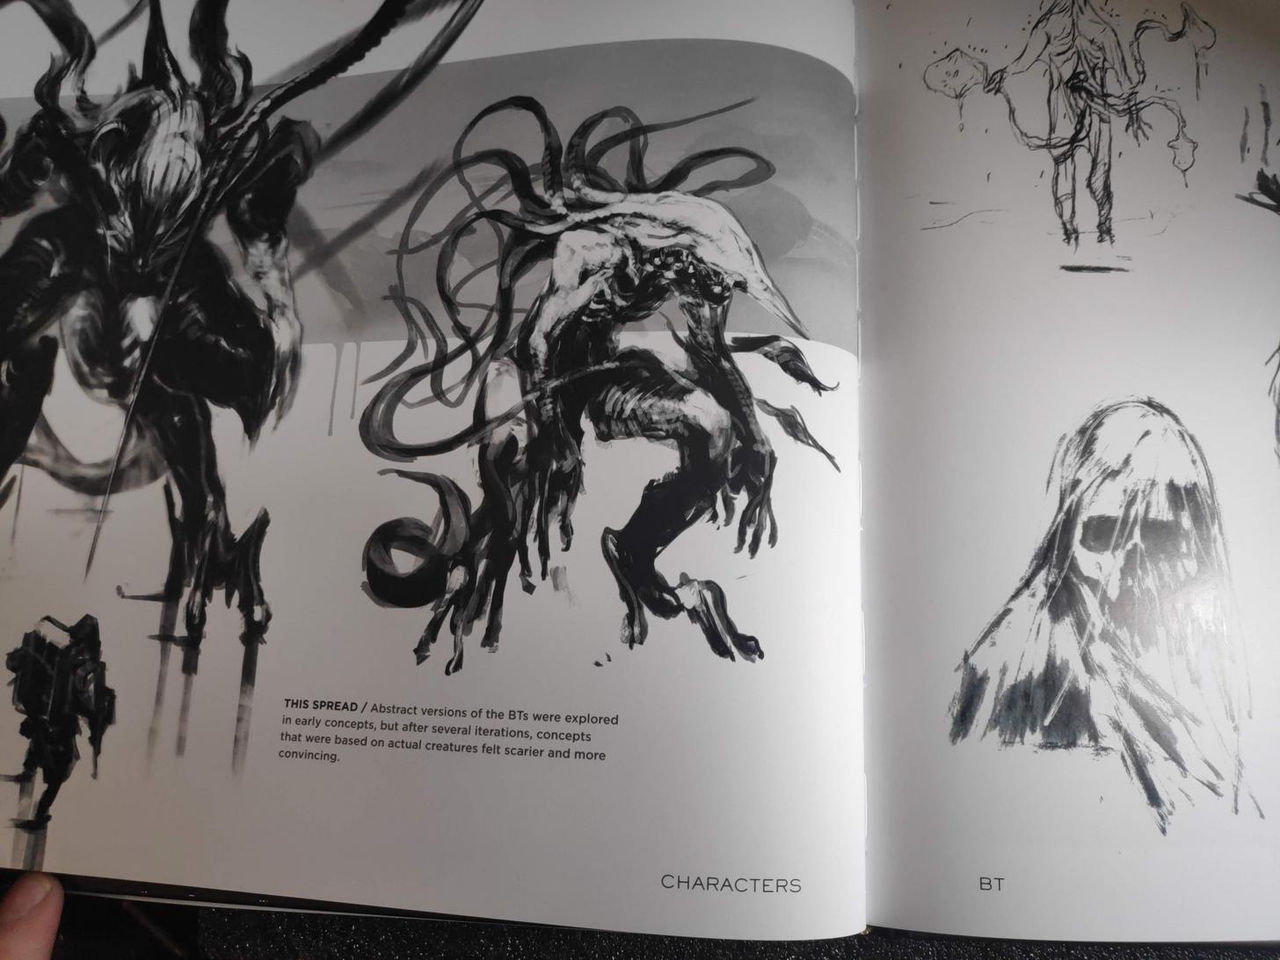 First images from the book of illustrations that explores the origin of Death Stranding